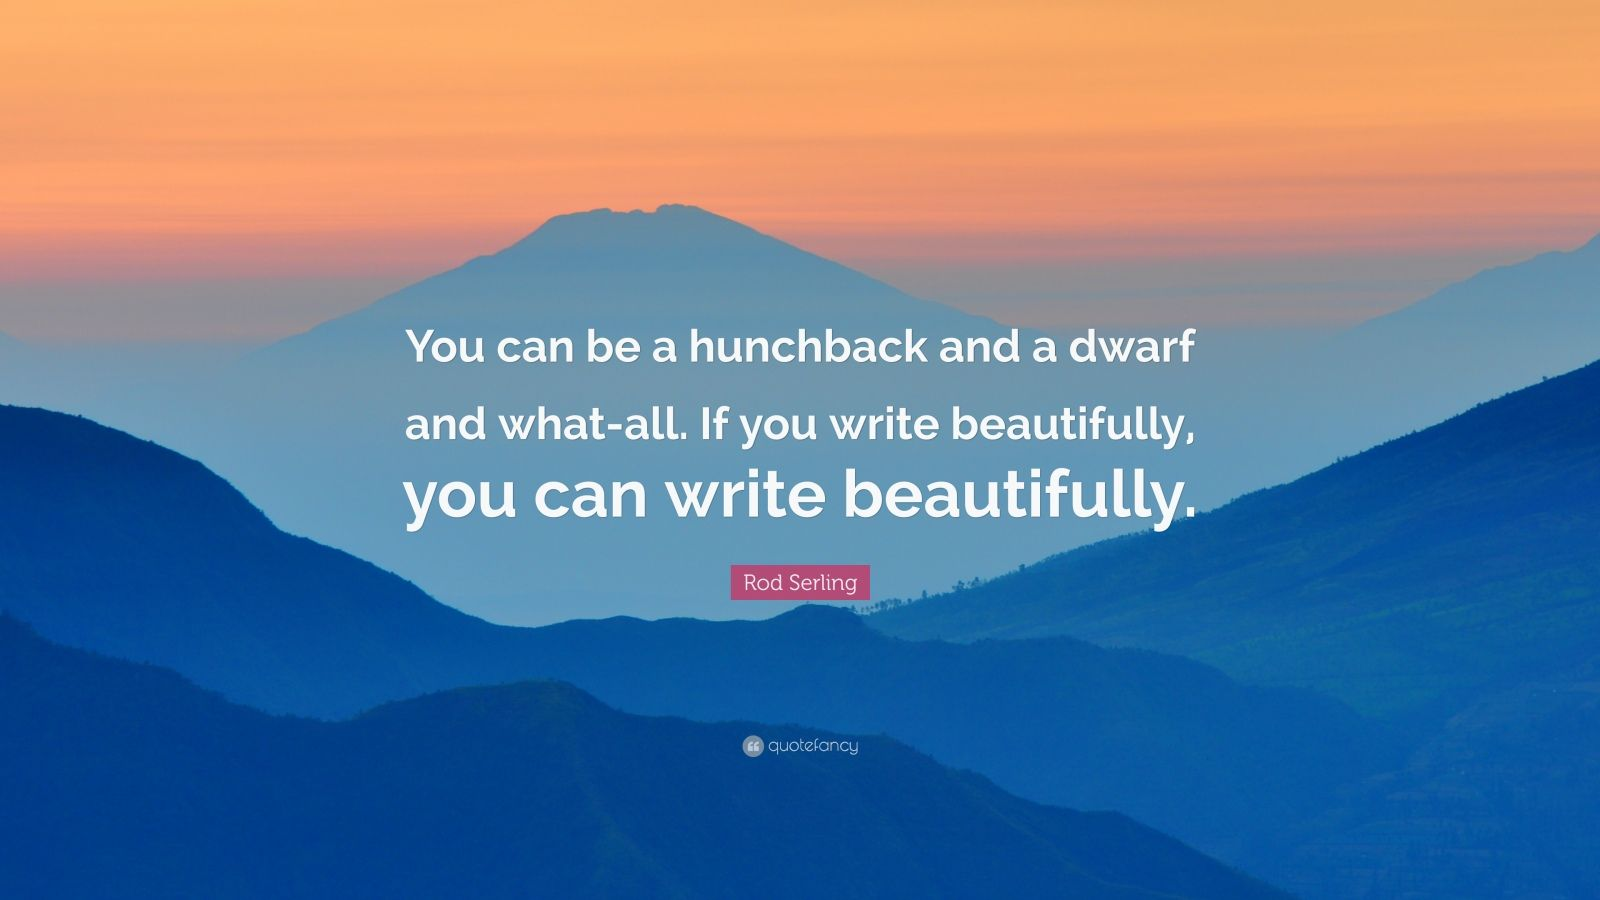 """Rod Serling Quote: """"You can be a hunchback and a dwarf and what-all. If you write beautifully, you can write beautifully."""""""